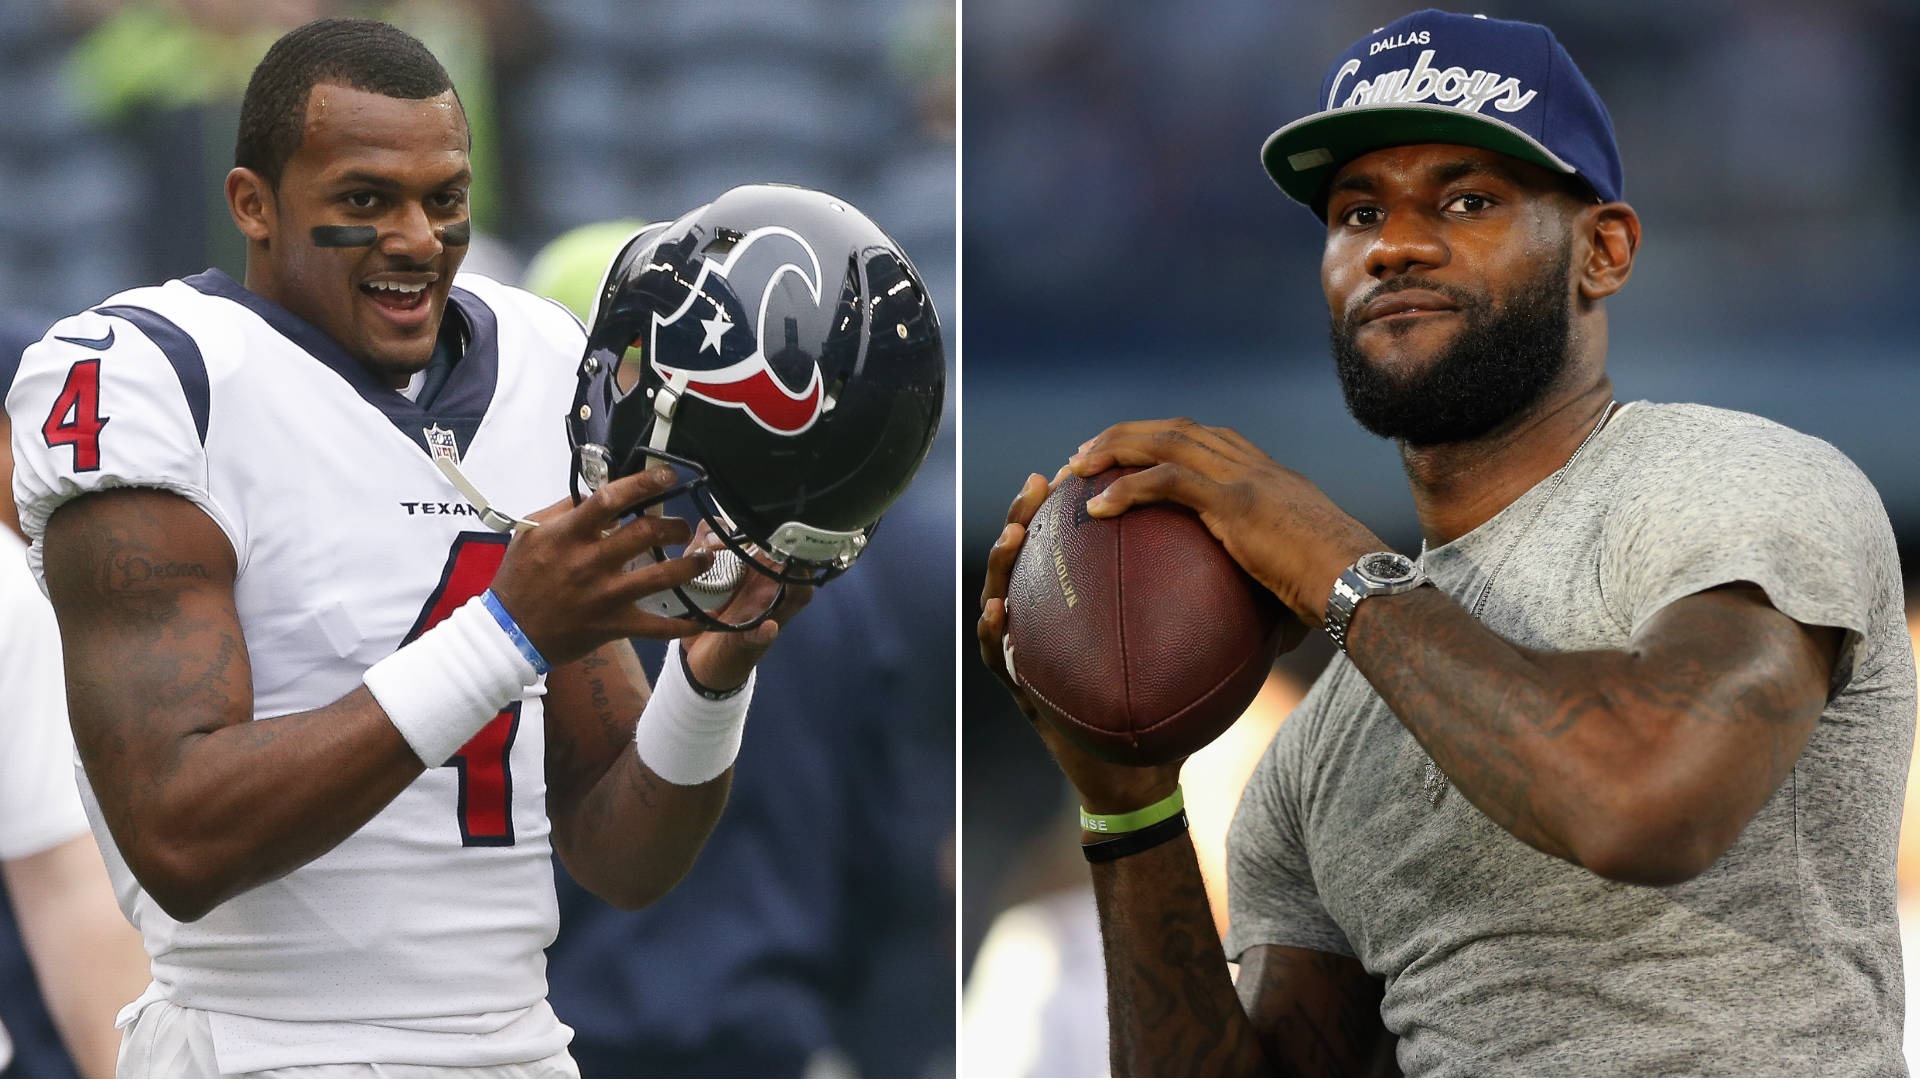 LeBron James: 'Deshaun Watson should be a Brown'